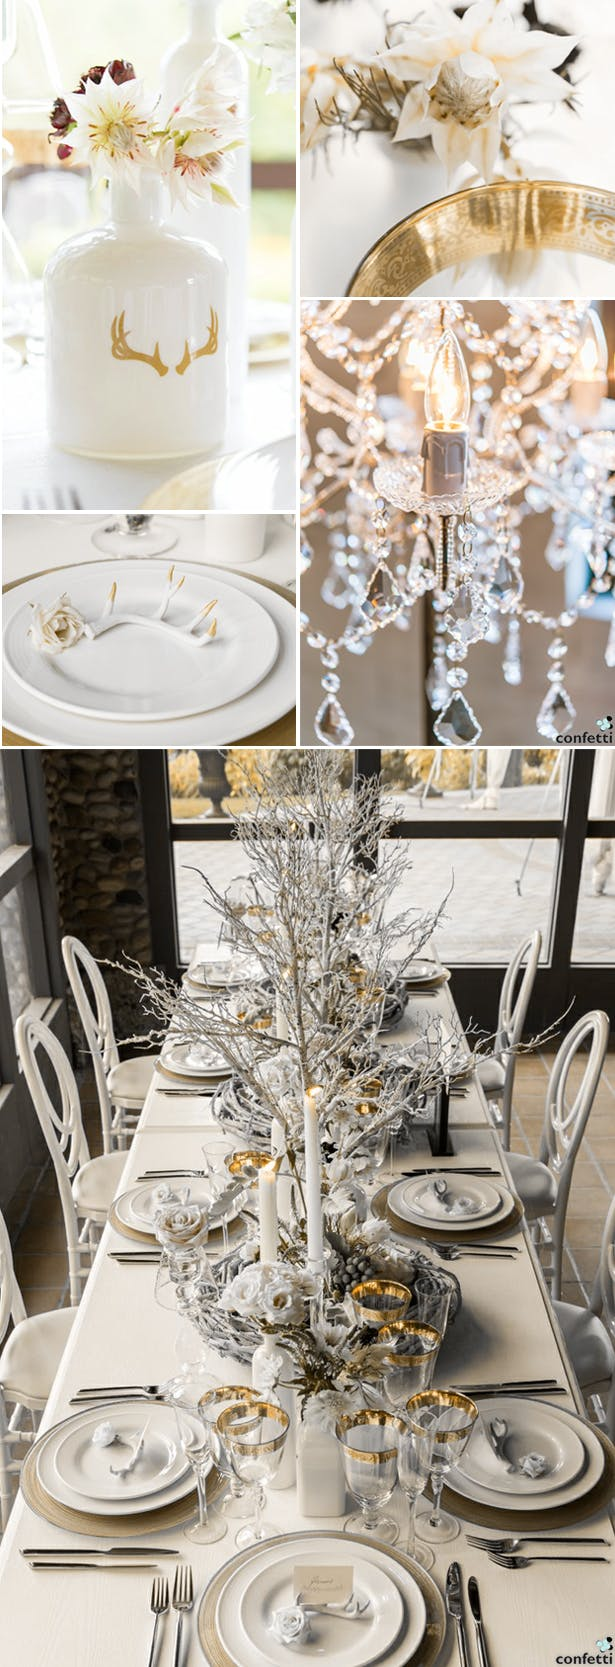 White and Gold Winter Wedding | Confetti.co.uk